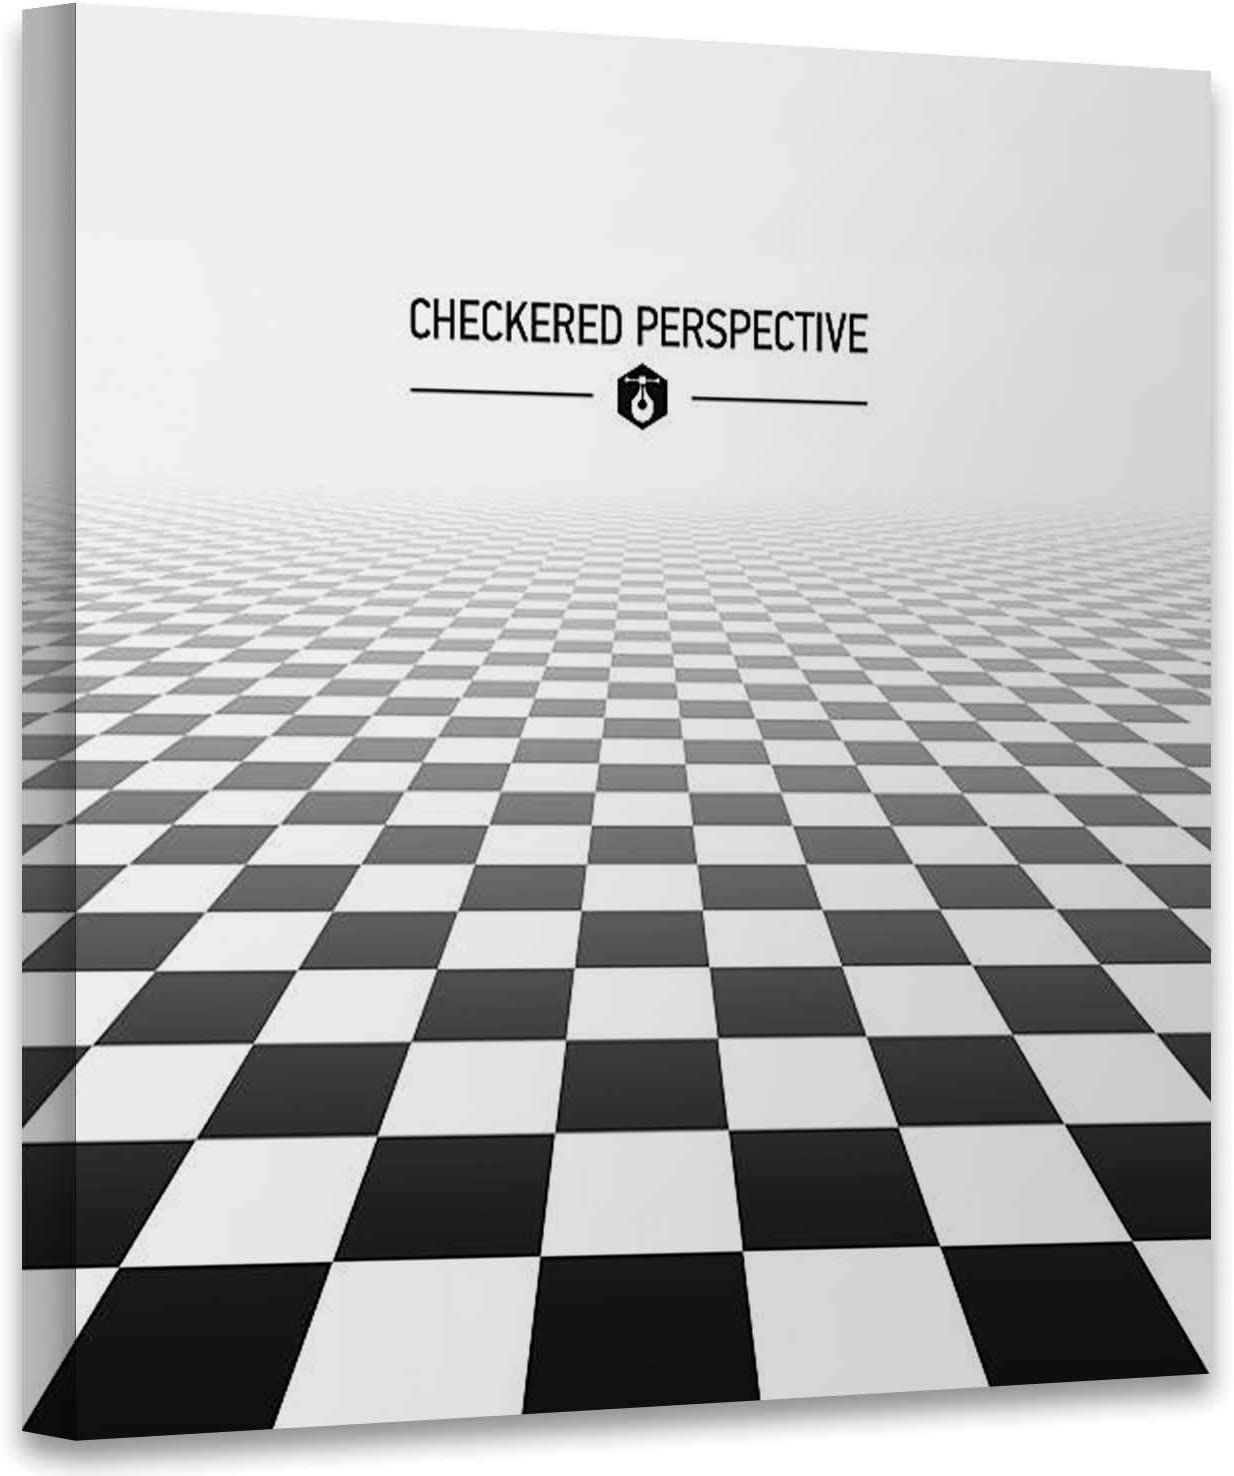 Amazon Com Hitecera Checkered Perspective Background Illustration Chess Board Art Print Decals Chess Art Print For Living Room 19x19in Posters Prints